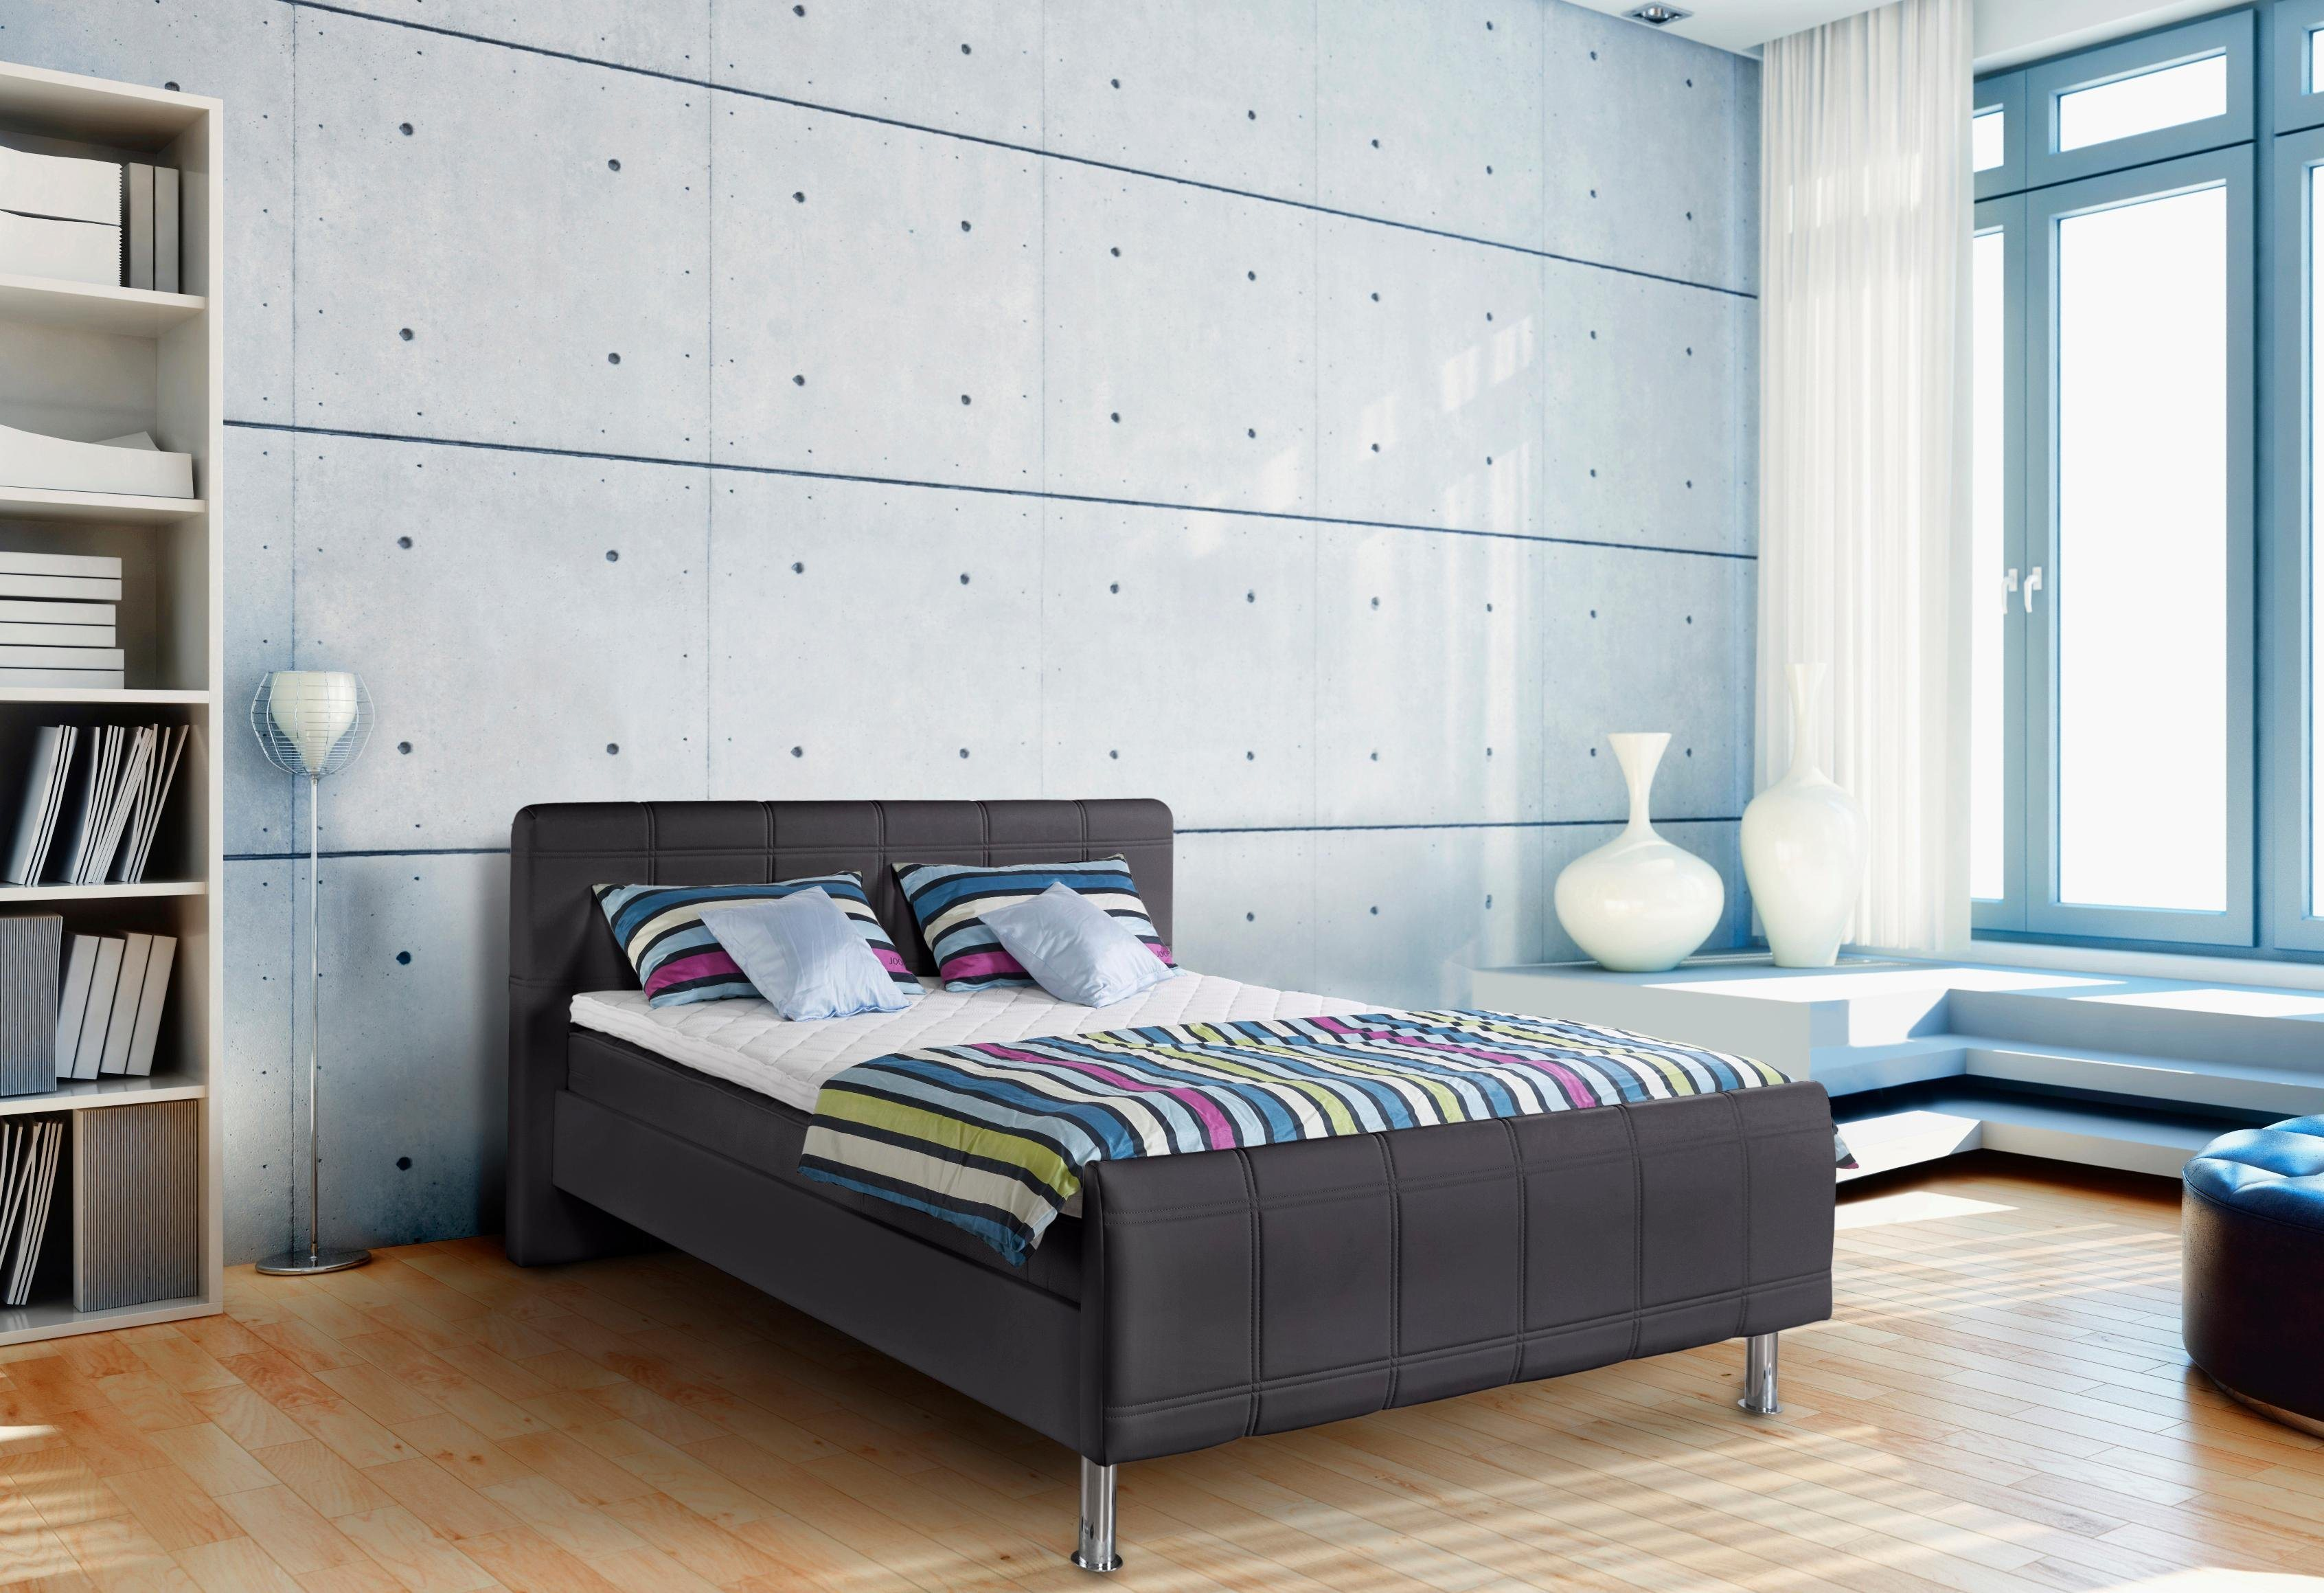 chrom federn boxspringbetten online kaufen m bel suchmaschine. Black Bedroom Furniture Sets. Home Design Ideas